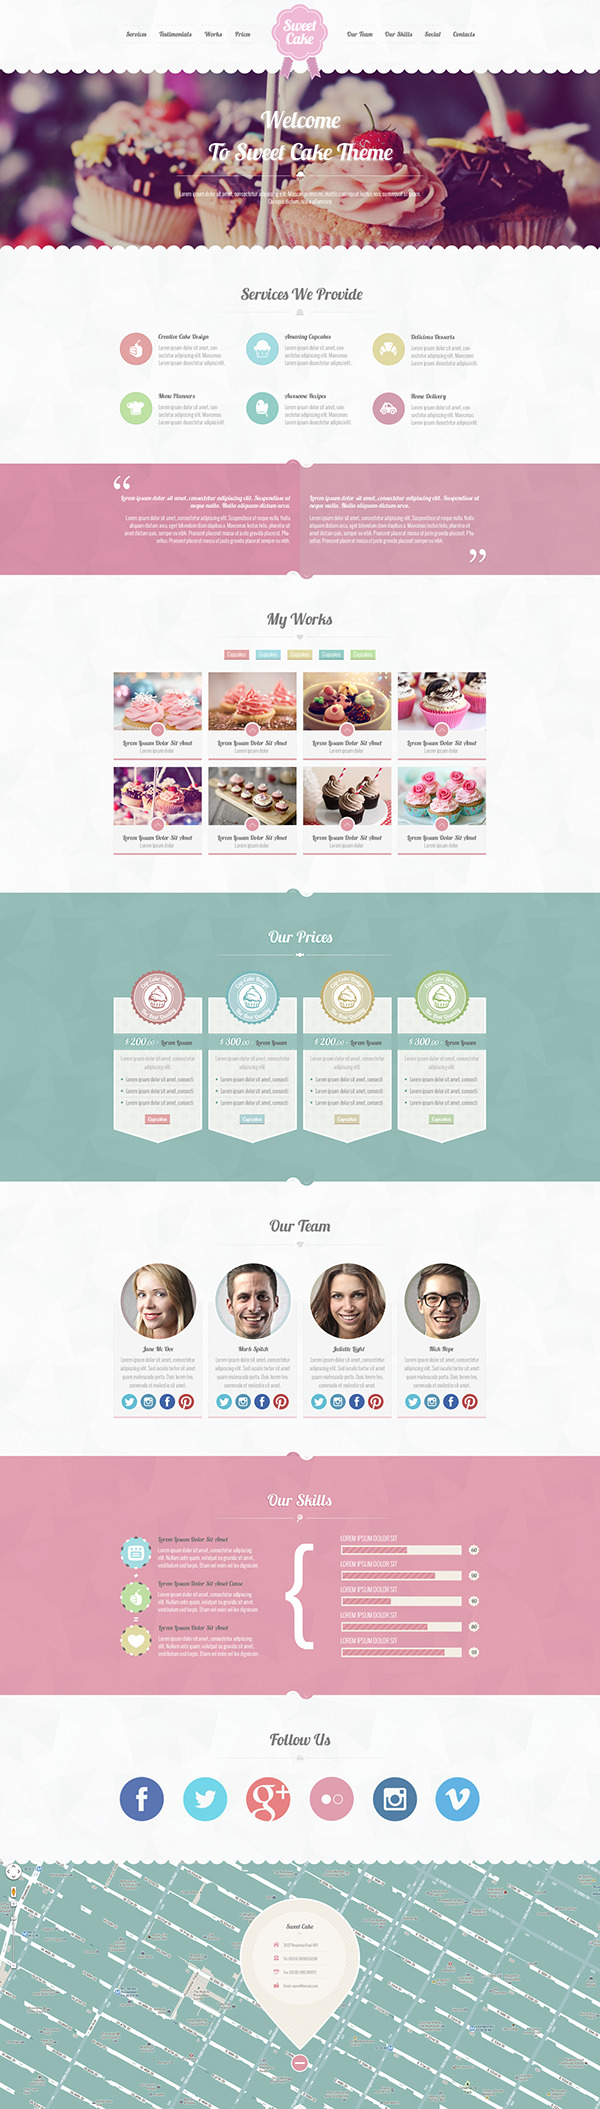 Website site Webdesign template One Page Single Page psd psd template creative modern clean